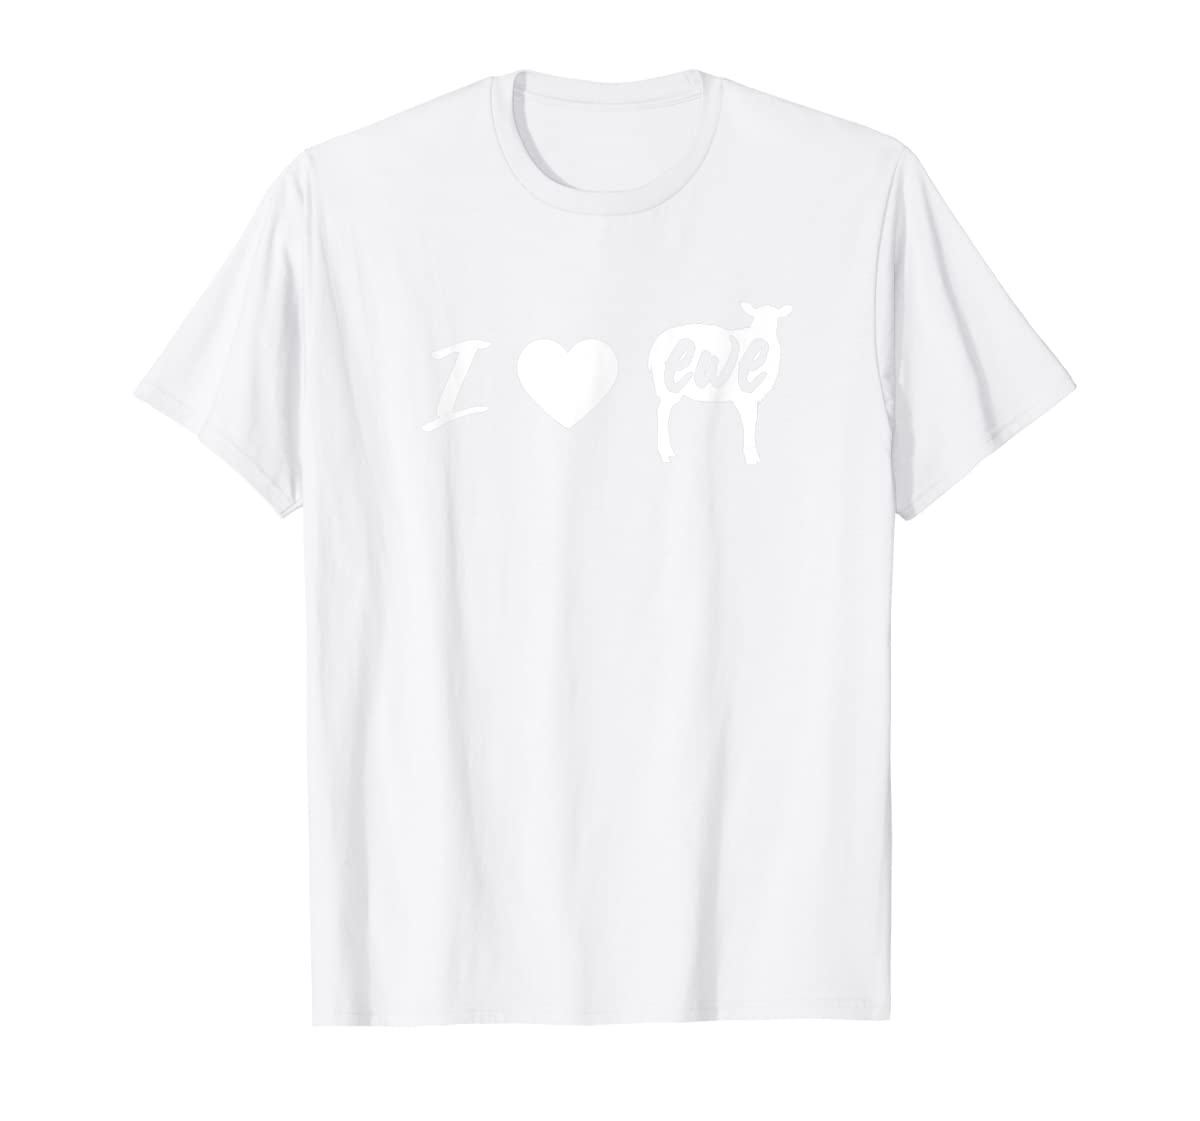 I Love Ewe - I Love You Sheep Pun Shirt-Men's T-Shirt-White